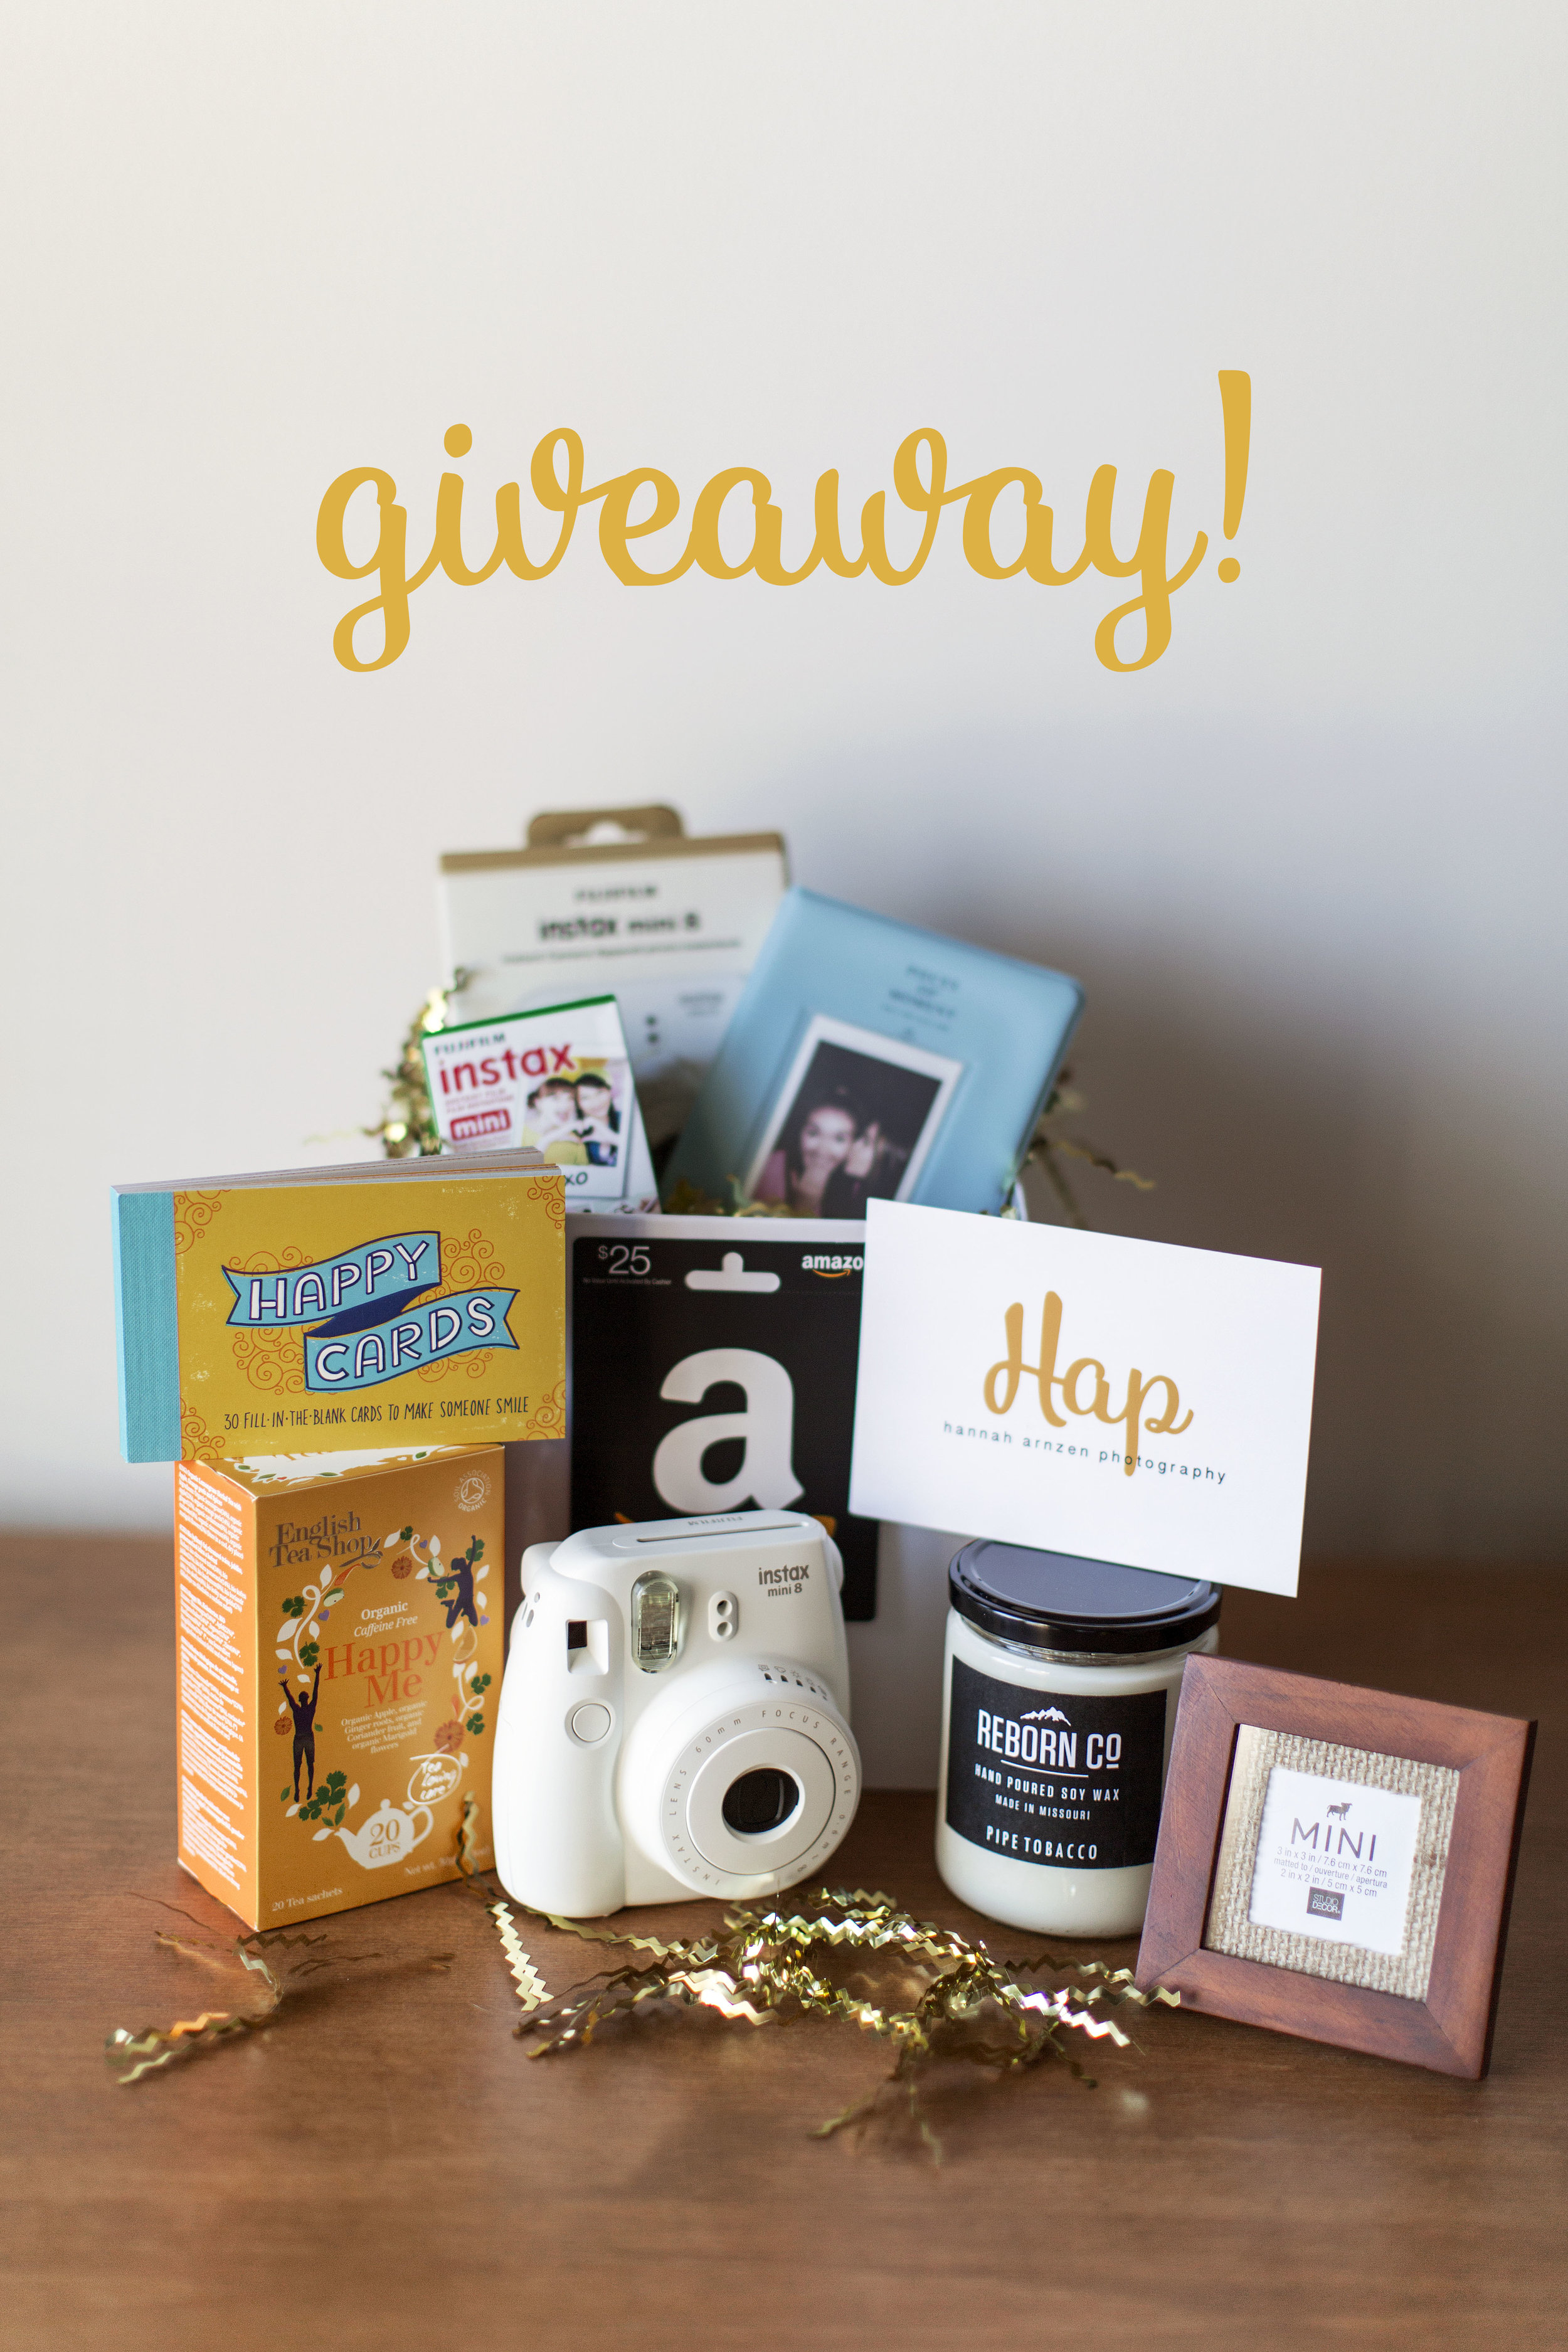 Giveaway items include the following: A BRAND NEW Fujifilm instax mini 8 camera, colored film for the instax mini 8, (1)photo album for your polaroids, (1)$25 gift card to Amazon, (1)HAPPY CARDS book, (1)box of organic Happy Me tea, (1) Pipe Tobacco soy wax candle from REBORN CO, (1) $50.00 gift certificate towards a HAP photo session, and (1) wooden photo frame with YOUR entry photo!